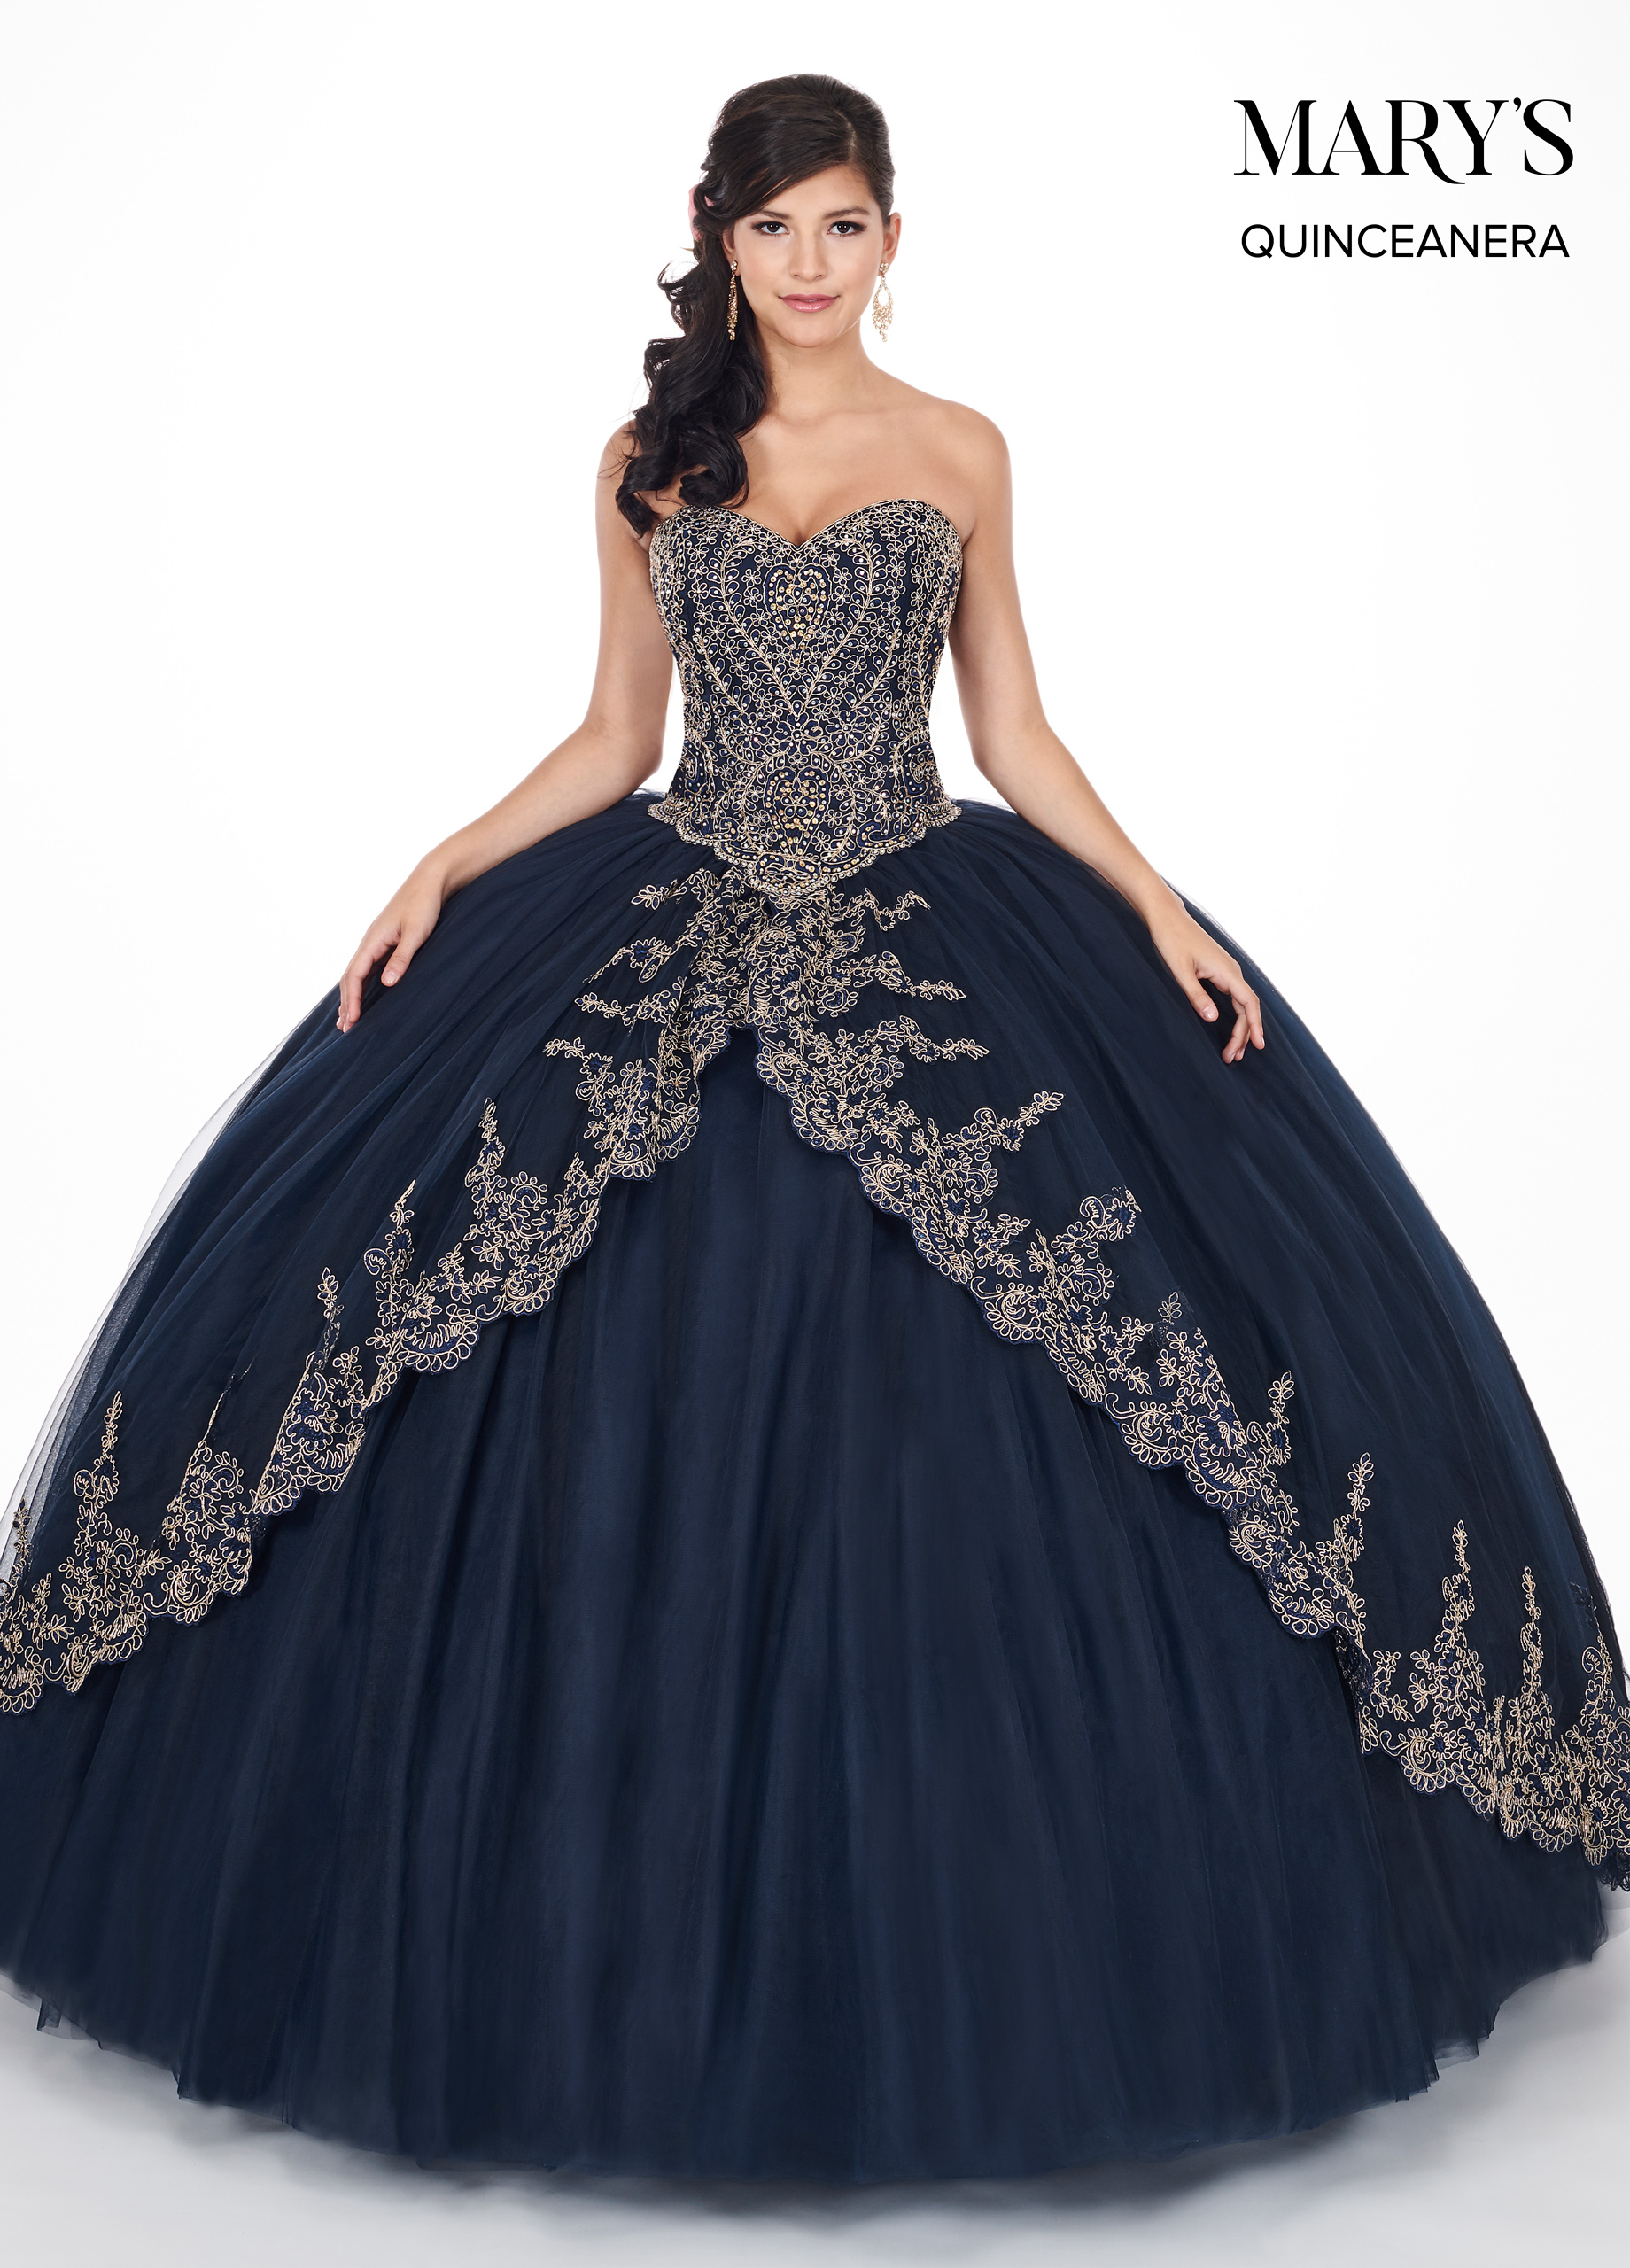 Marys Quinceanera Dresses | Mary's Quinceanera | Style - MQ1035